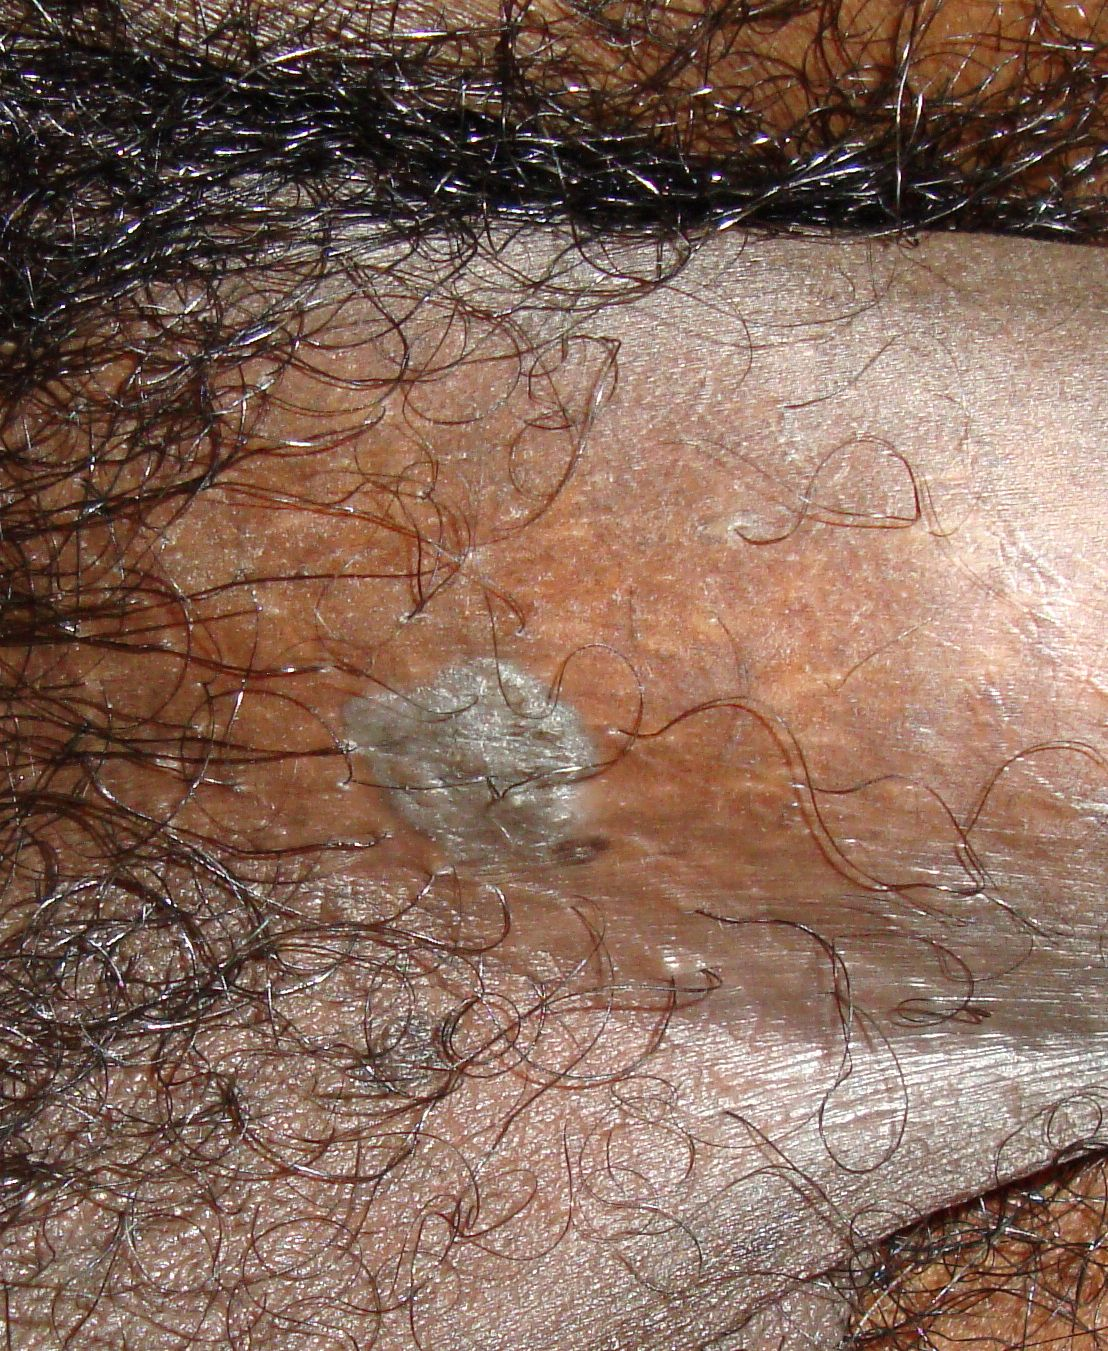 Condyloma Acuminatum Genital Warts The Clinical Advisor